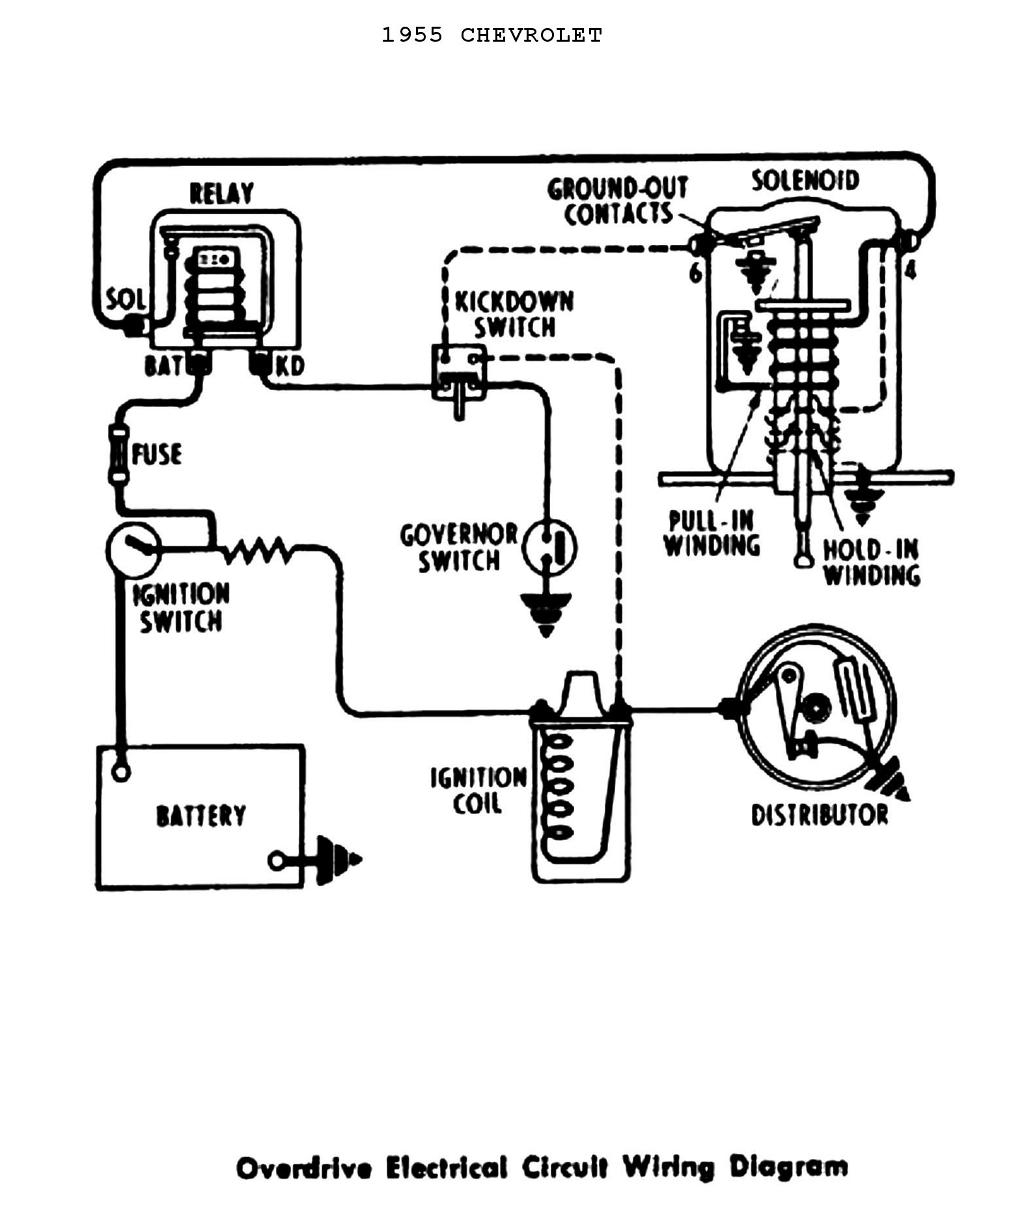 hight resolution of ford tractor ignition switch wiring diagram